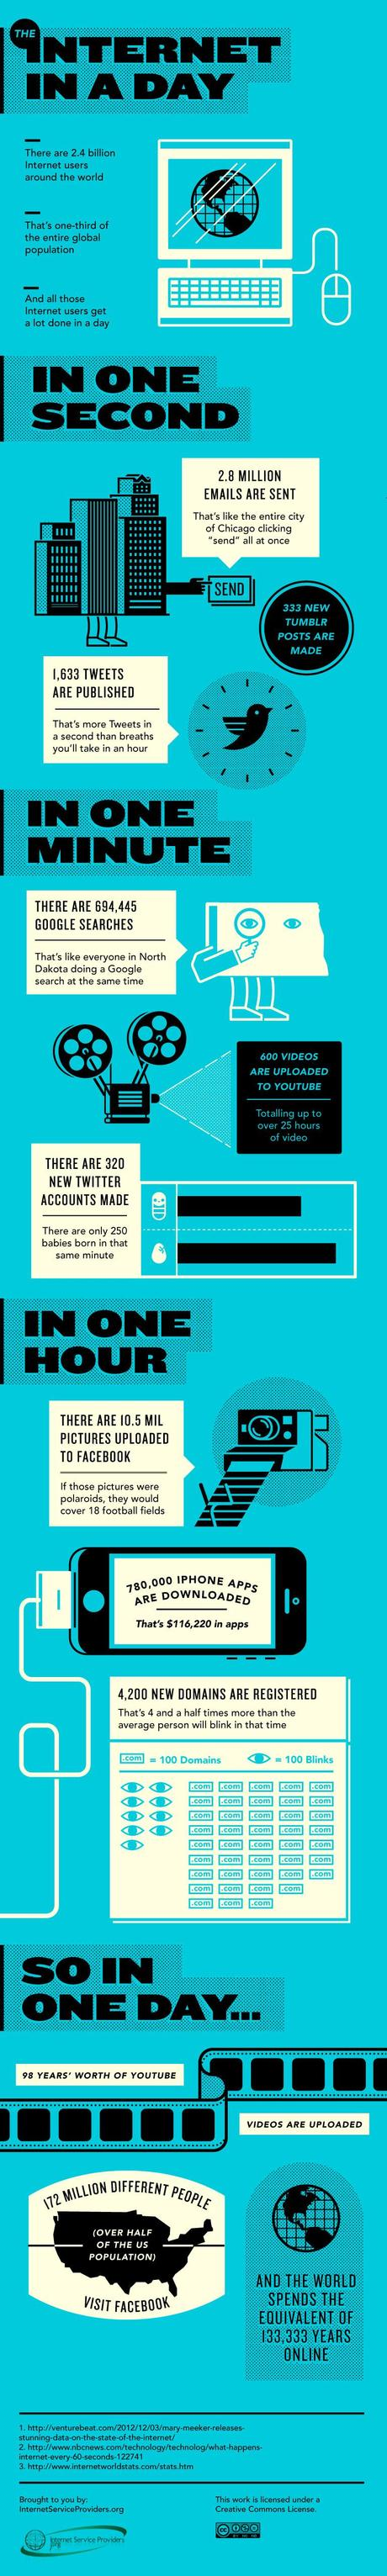 Internet Day Infographic